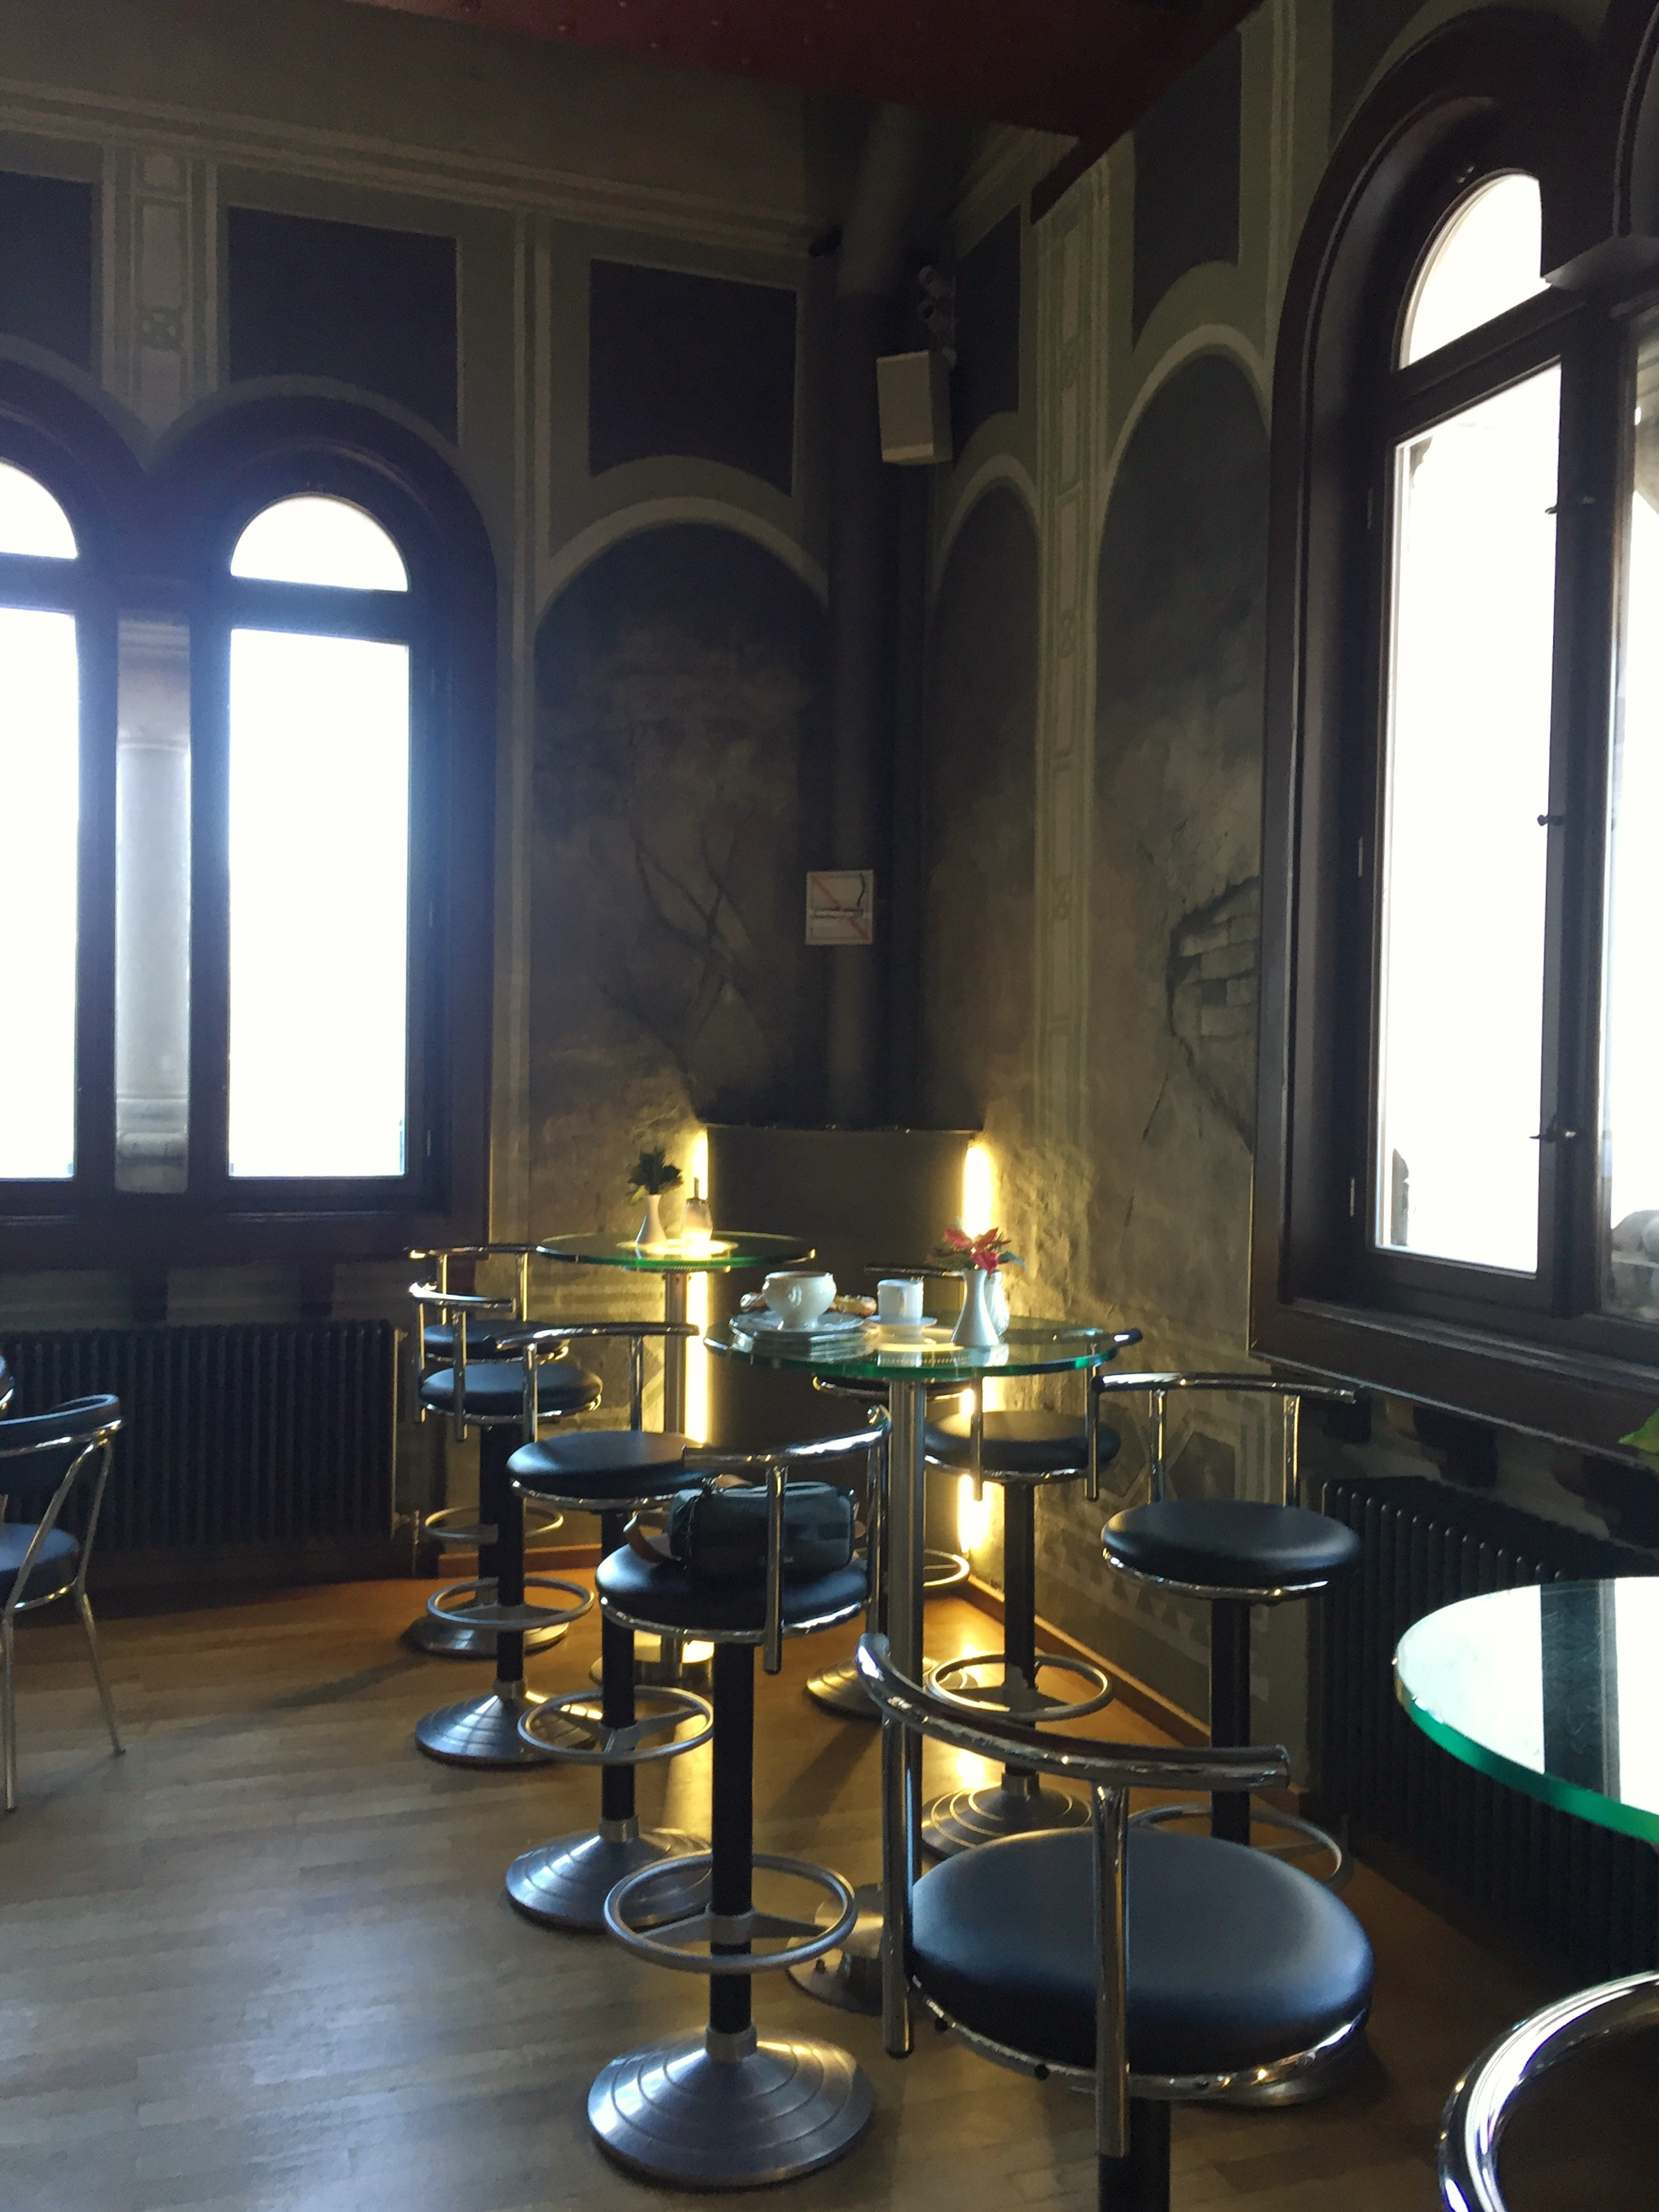 café in Neuschwanstein Castle